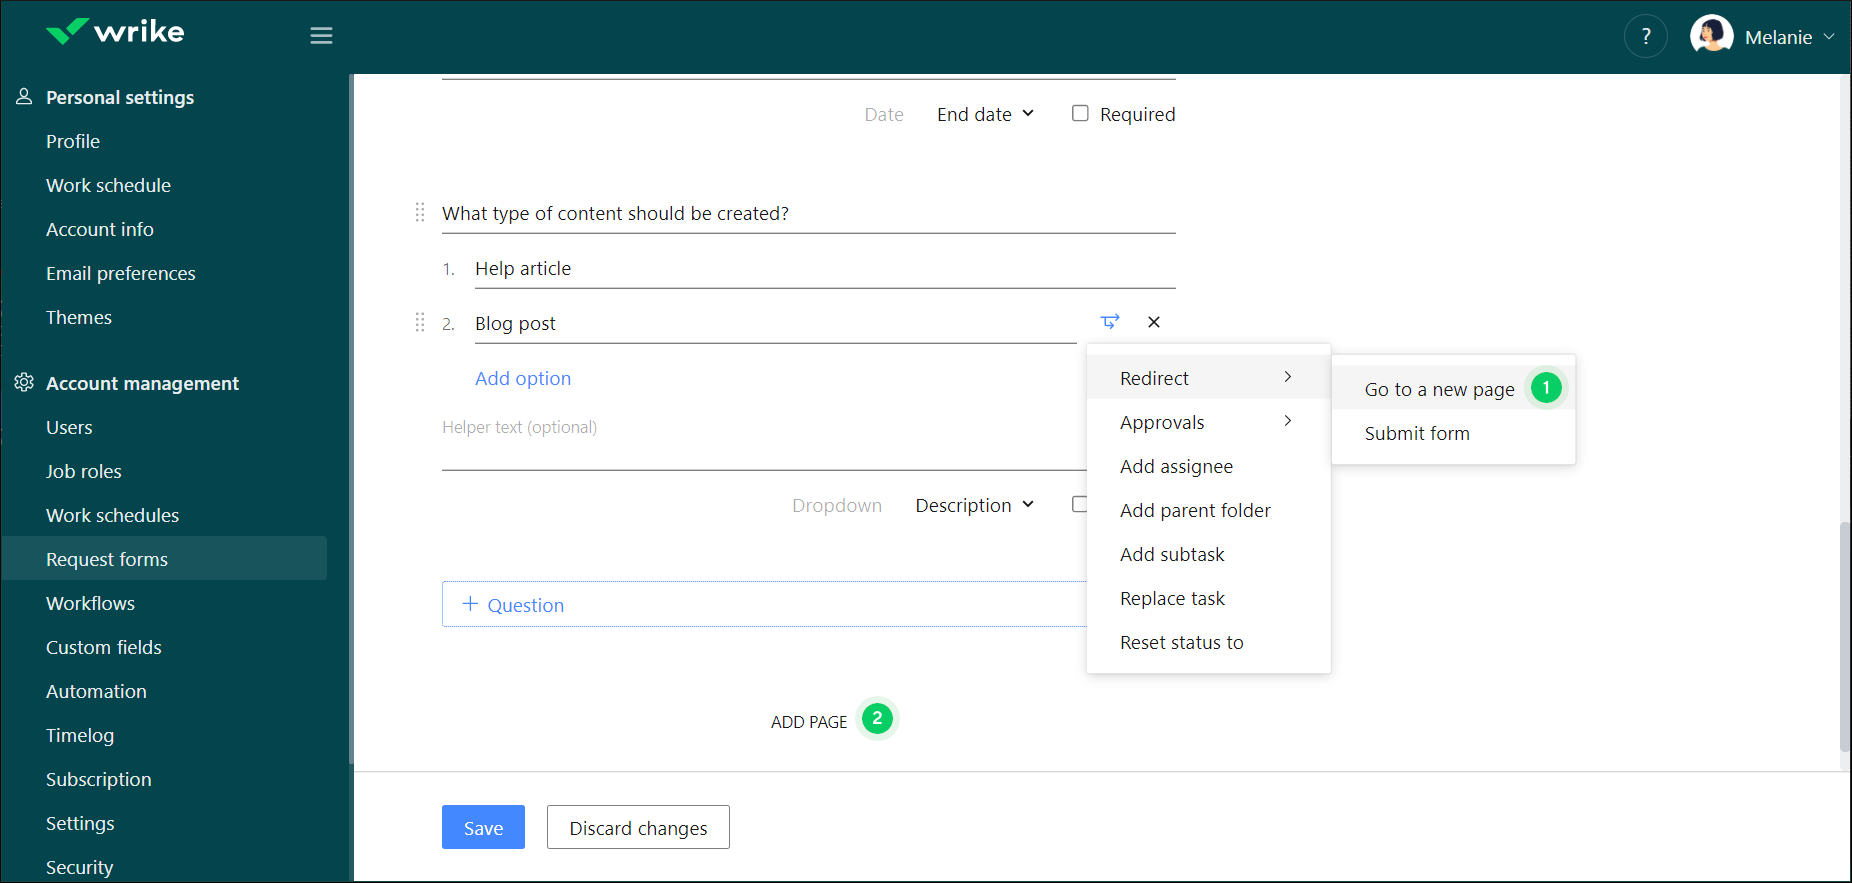 Creating_Multipage_Request_Forms-Add_a_page.png